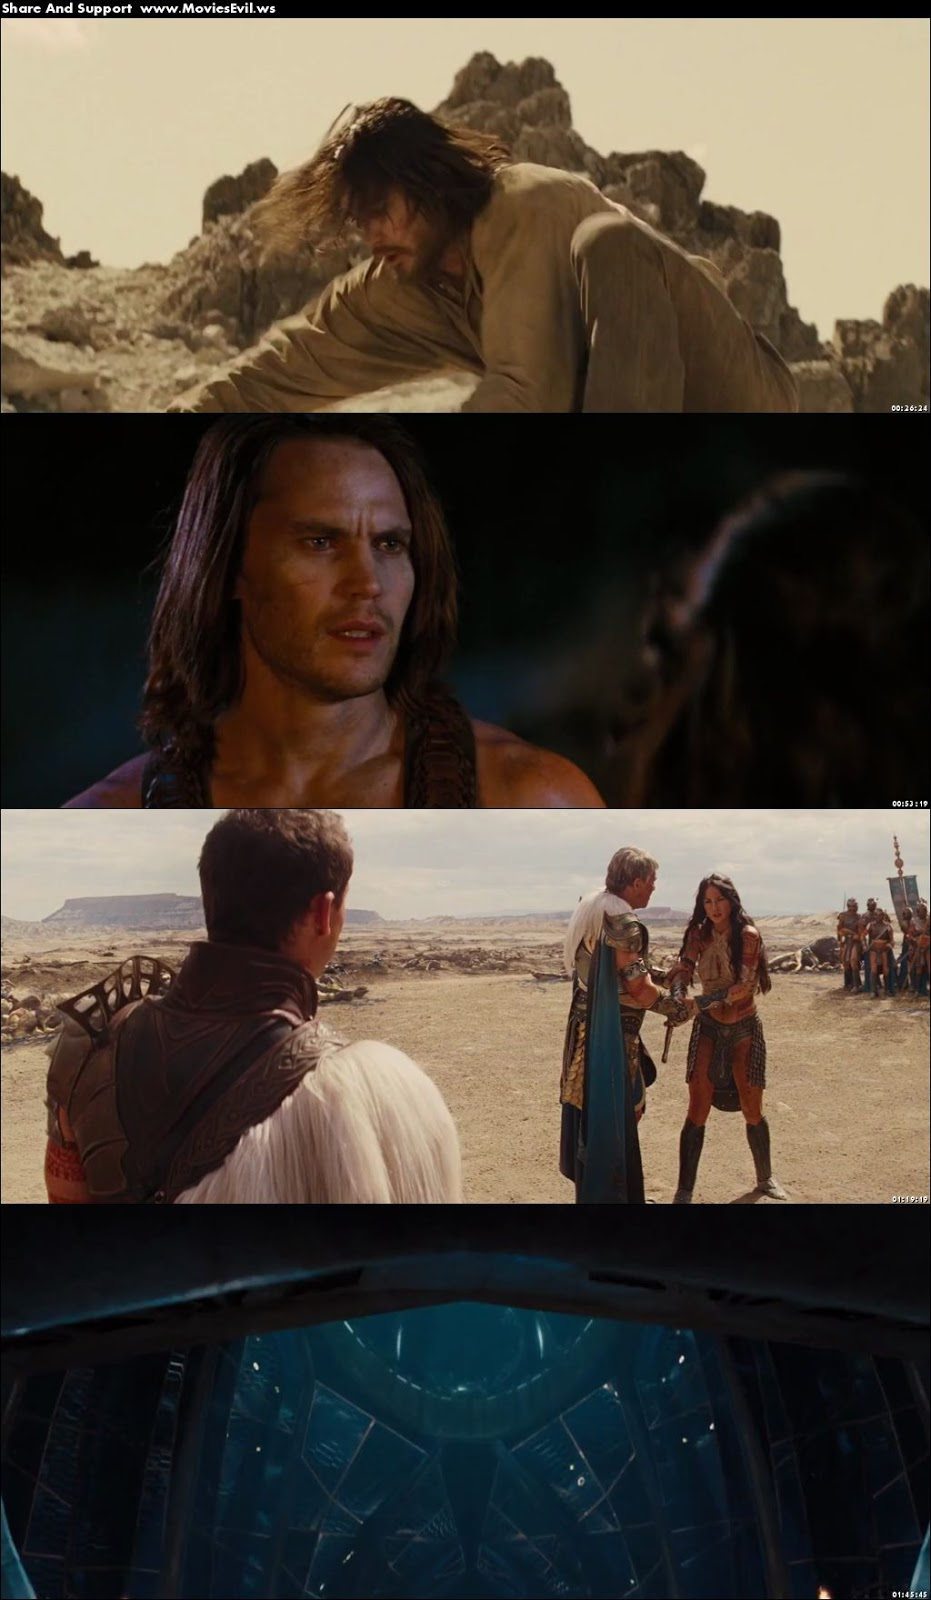 John Carter 2012 full movie download dual audio,John Carter 2012 300 mb dual audio,John Carter 2012 torrent download,John Carter 2012 watch online hindi dubbed,John Carter 2012 direct link,John Carter 2012 hindi dubbed download 720p, download english movie John Carter 2012 in hindi,John Carter 2012 worldfreee4u download,John Carter 2012khatrimaza download,John Carter 2012 9xmovies download,John Carter 2012 world4ufree download,John Carter 2012 extramovies,John Carter 2012 movies counter download